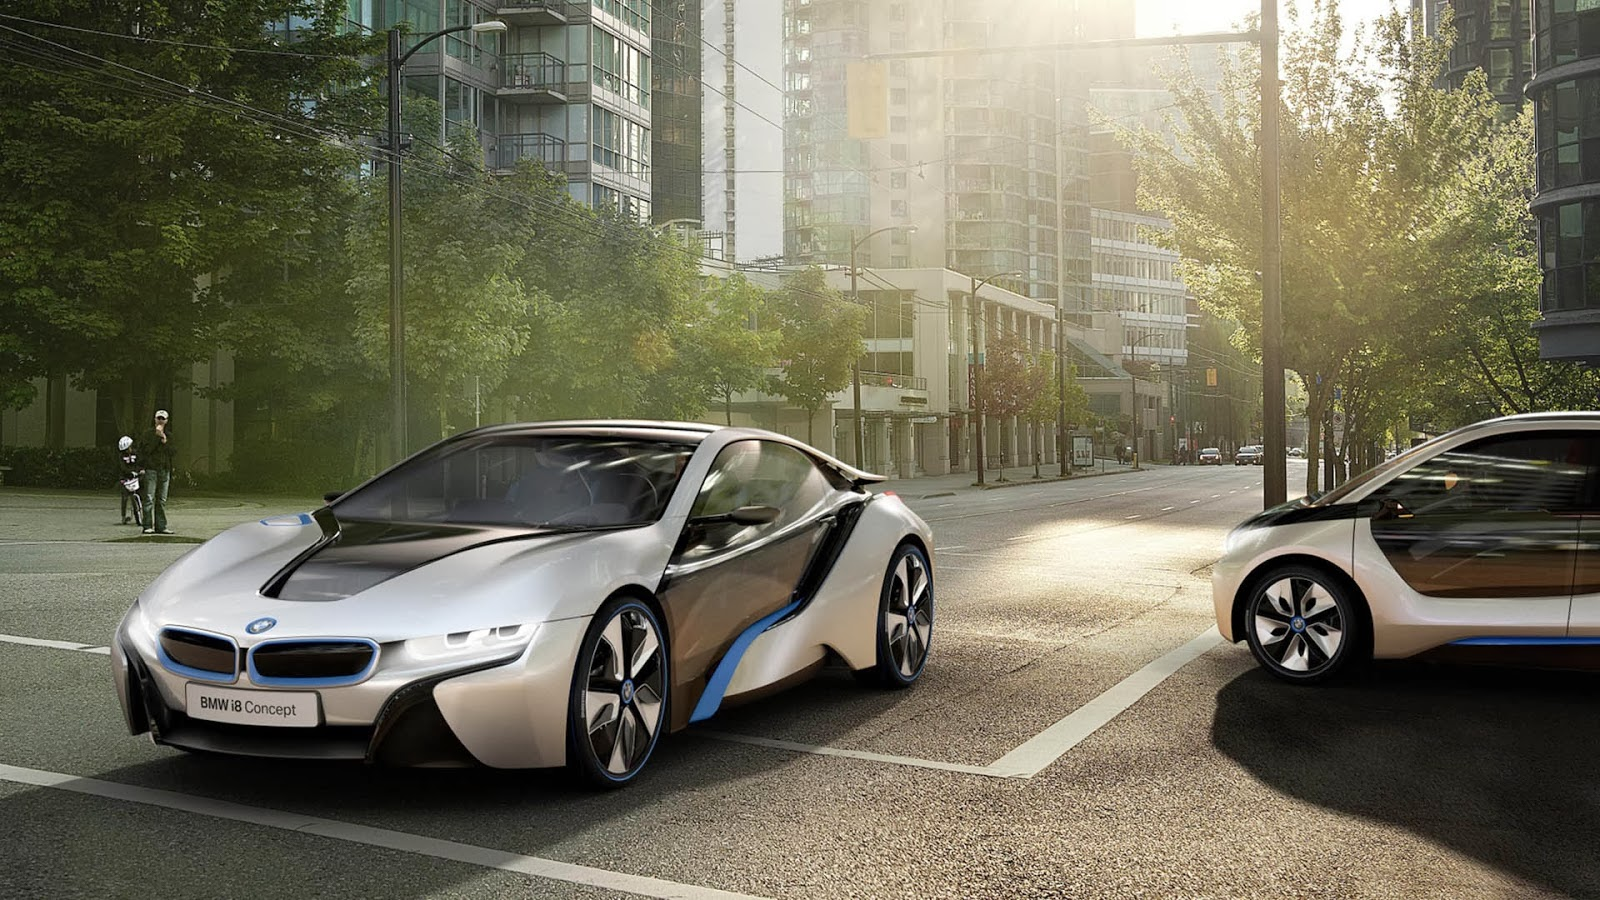 hd wallpapers download bmw i8 cars hd wallpapers 1080p